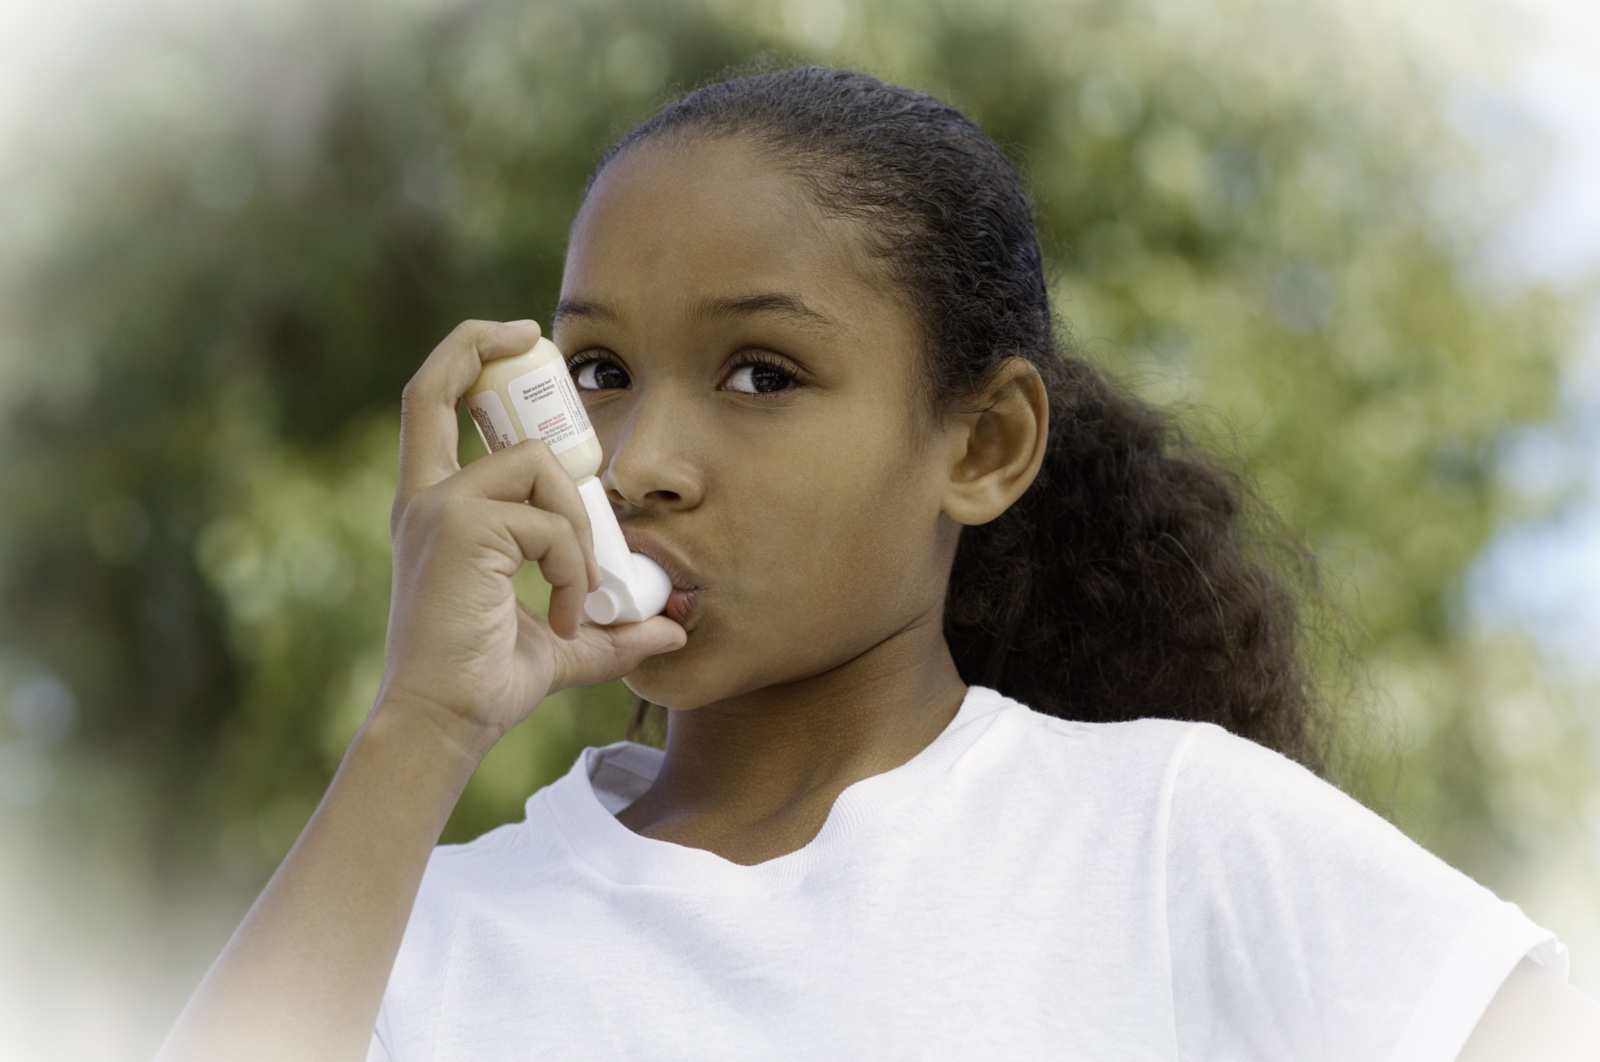 For Professionals: Asthma and Behavioral Health - An Argument for Integrated Care